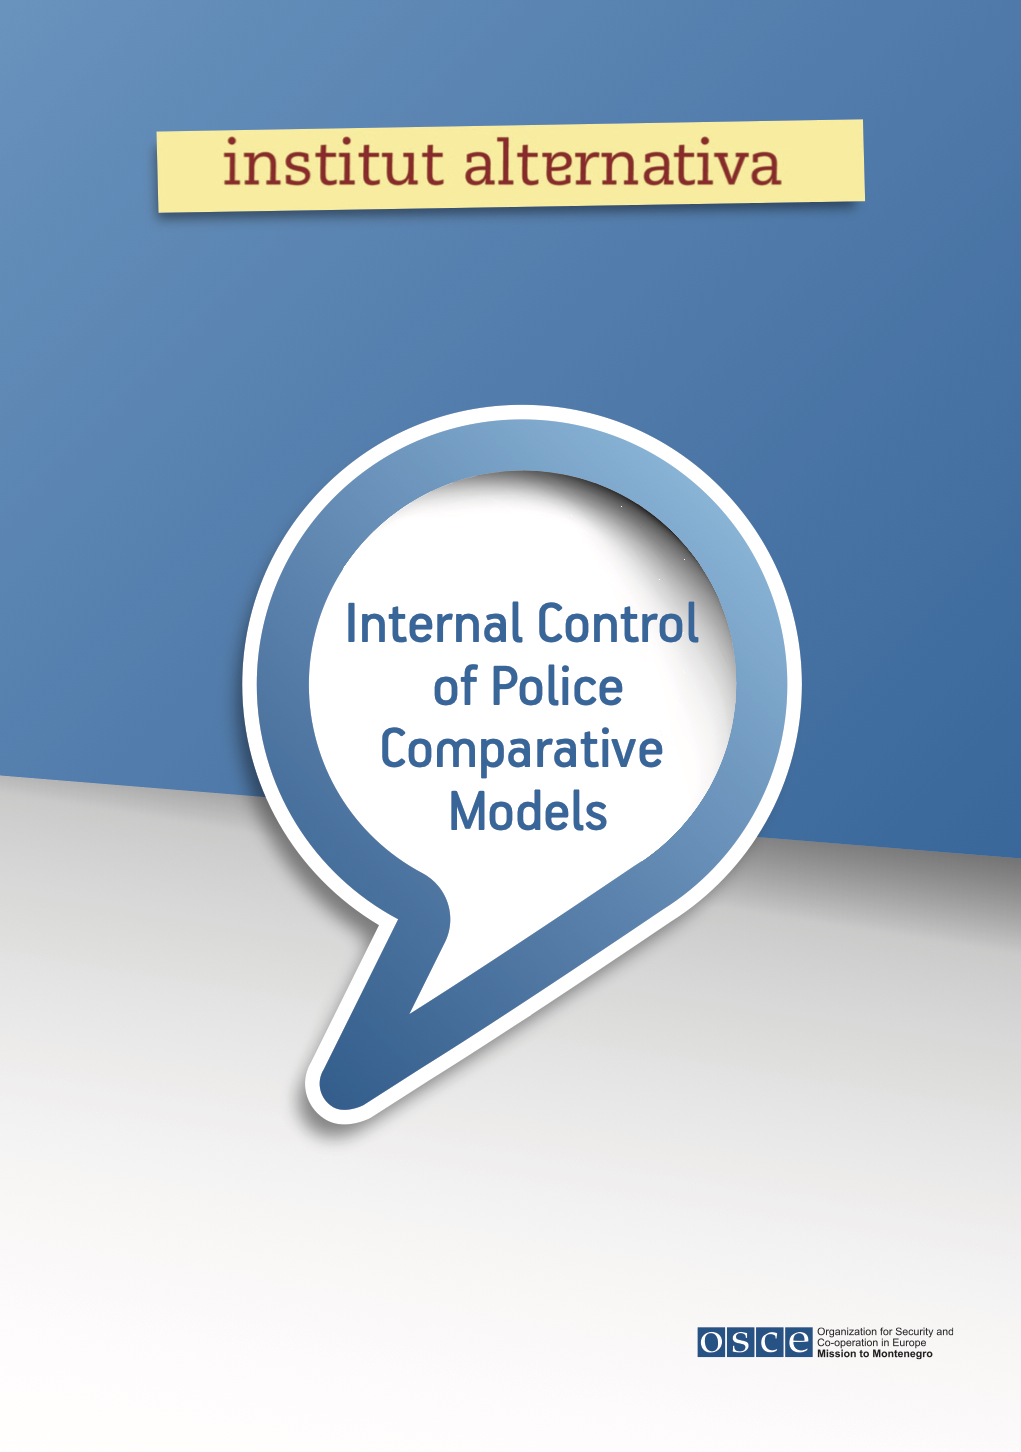 Internal Control of Police Comparative Models